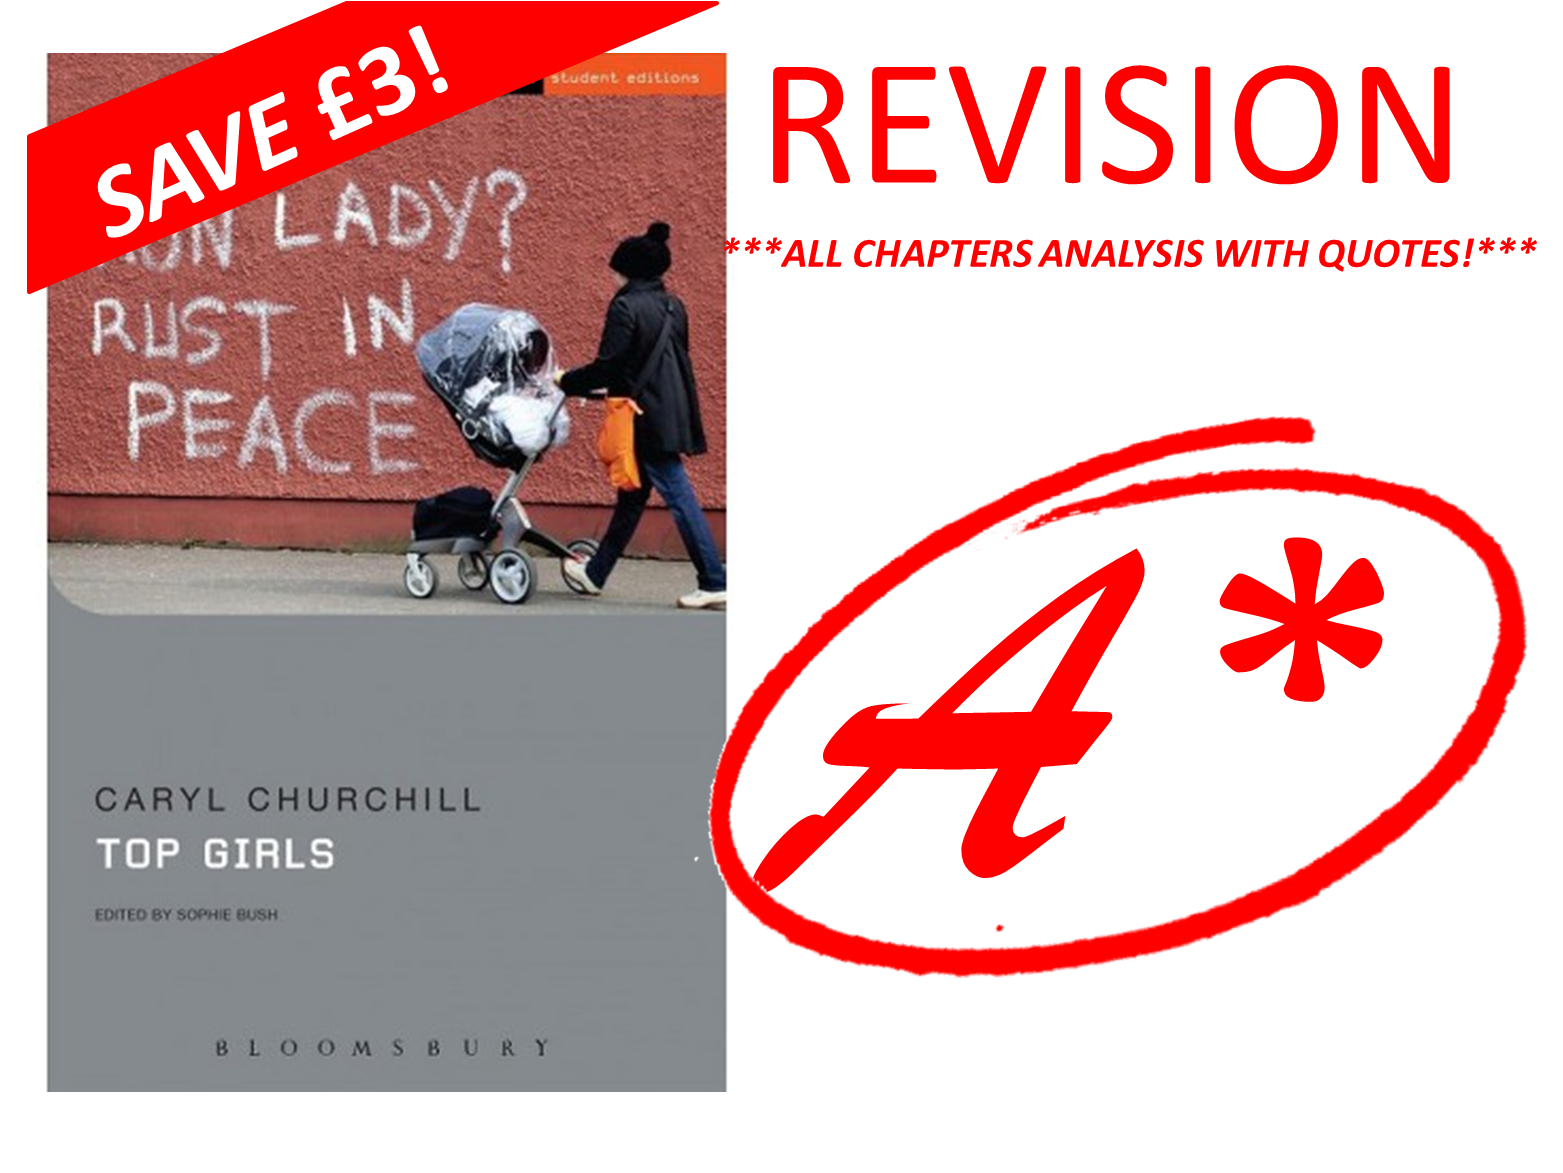 TOP GIRLS BY CARYL CHURCHILL REVISION